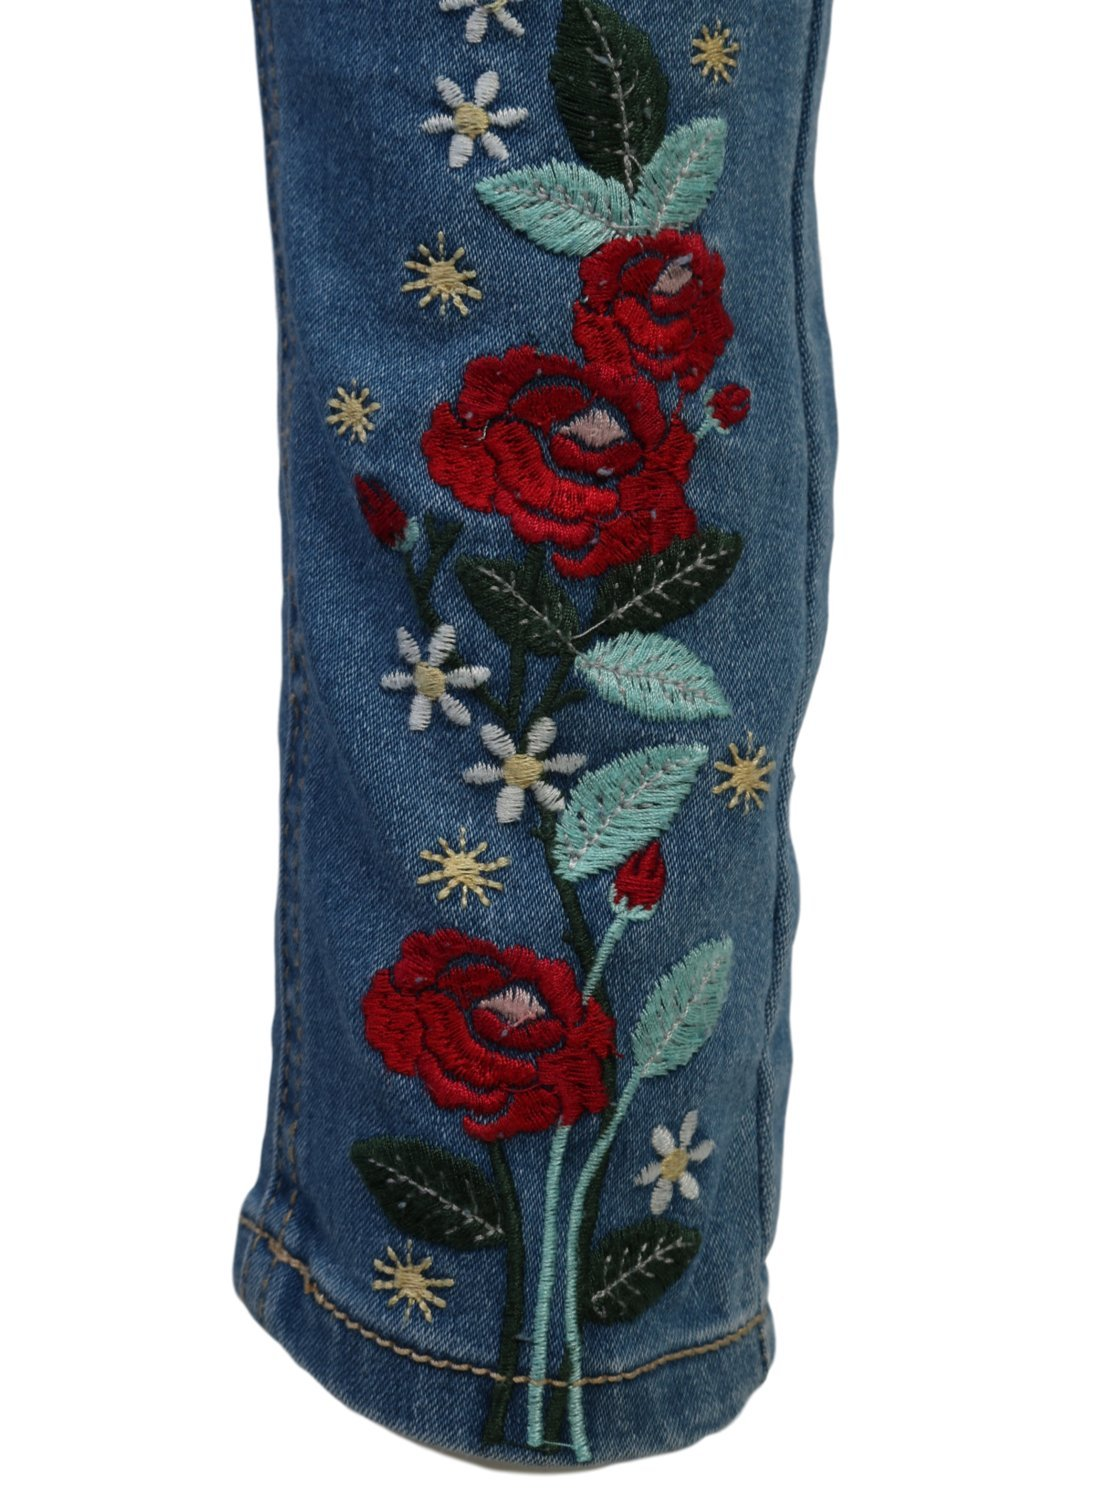 WallFlower Girl's Skinny Soft Stretch Jeans with Rips and Tears, Light Wash/Floral 8 by WallFlower Jeans (Image #4)